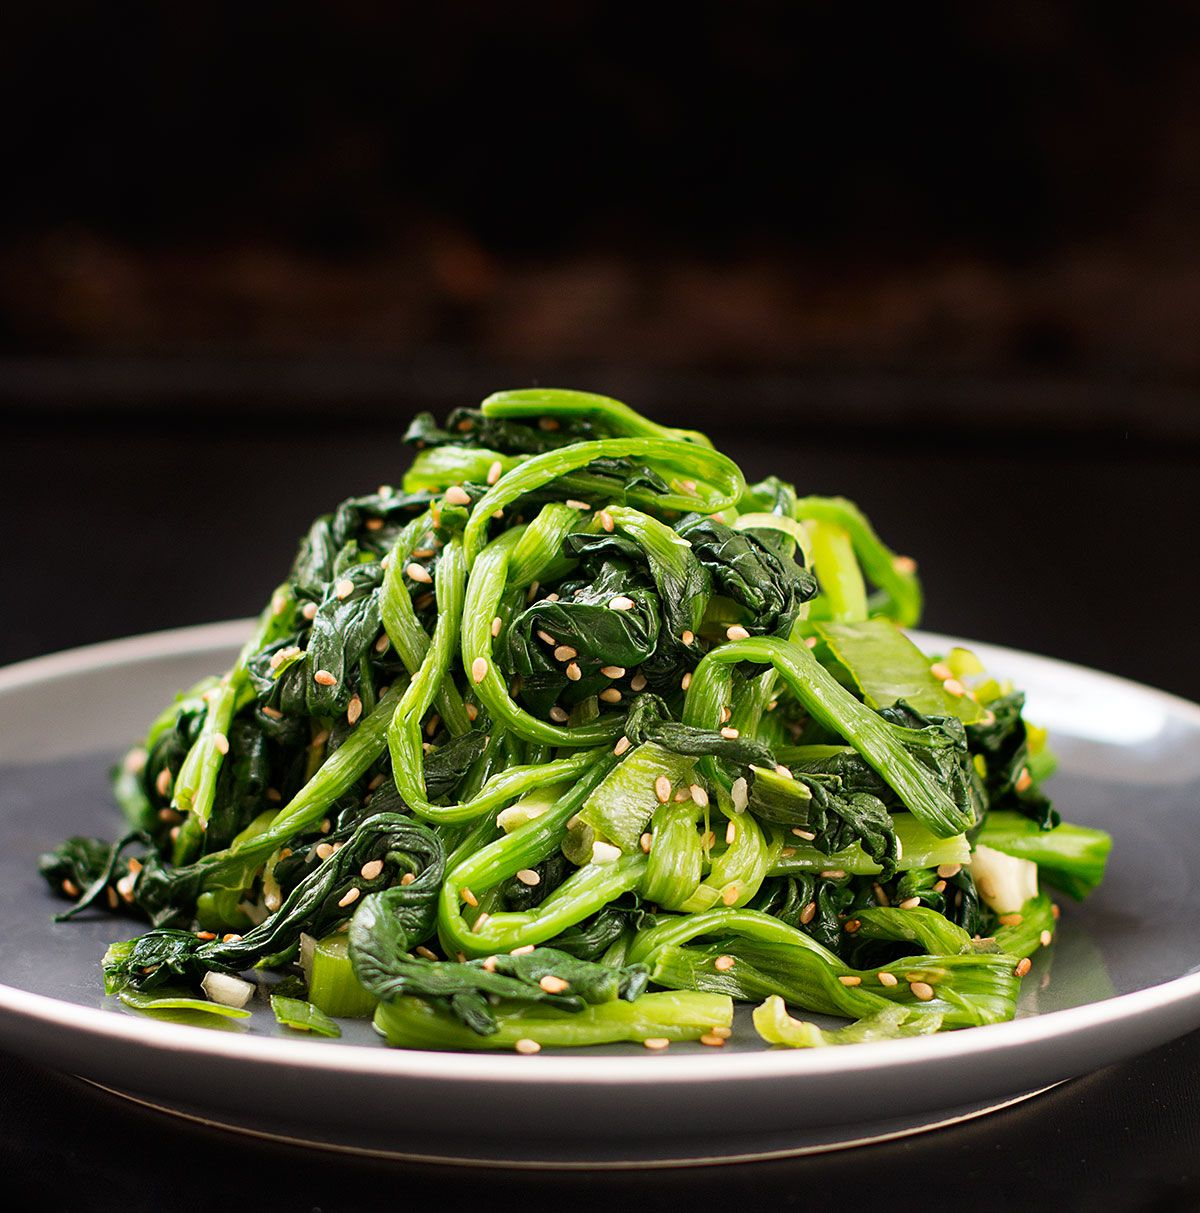 Try this light spinach salad recipe this korean spinach salad is try this light spinach salad recipe this korean spinach salad is one of the basic forumfinder Choice Image